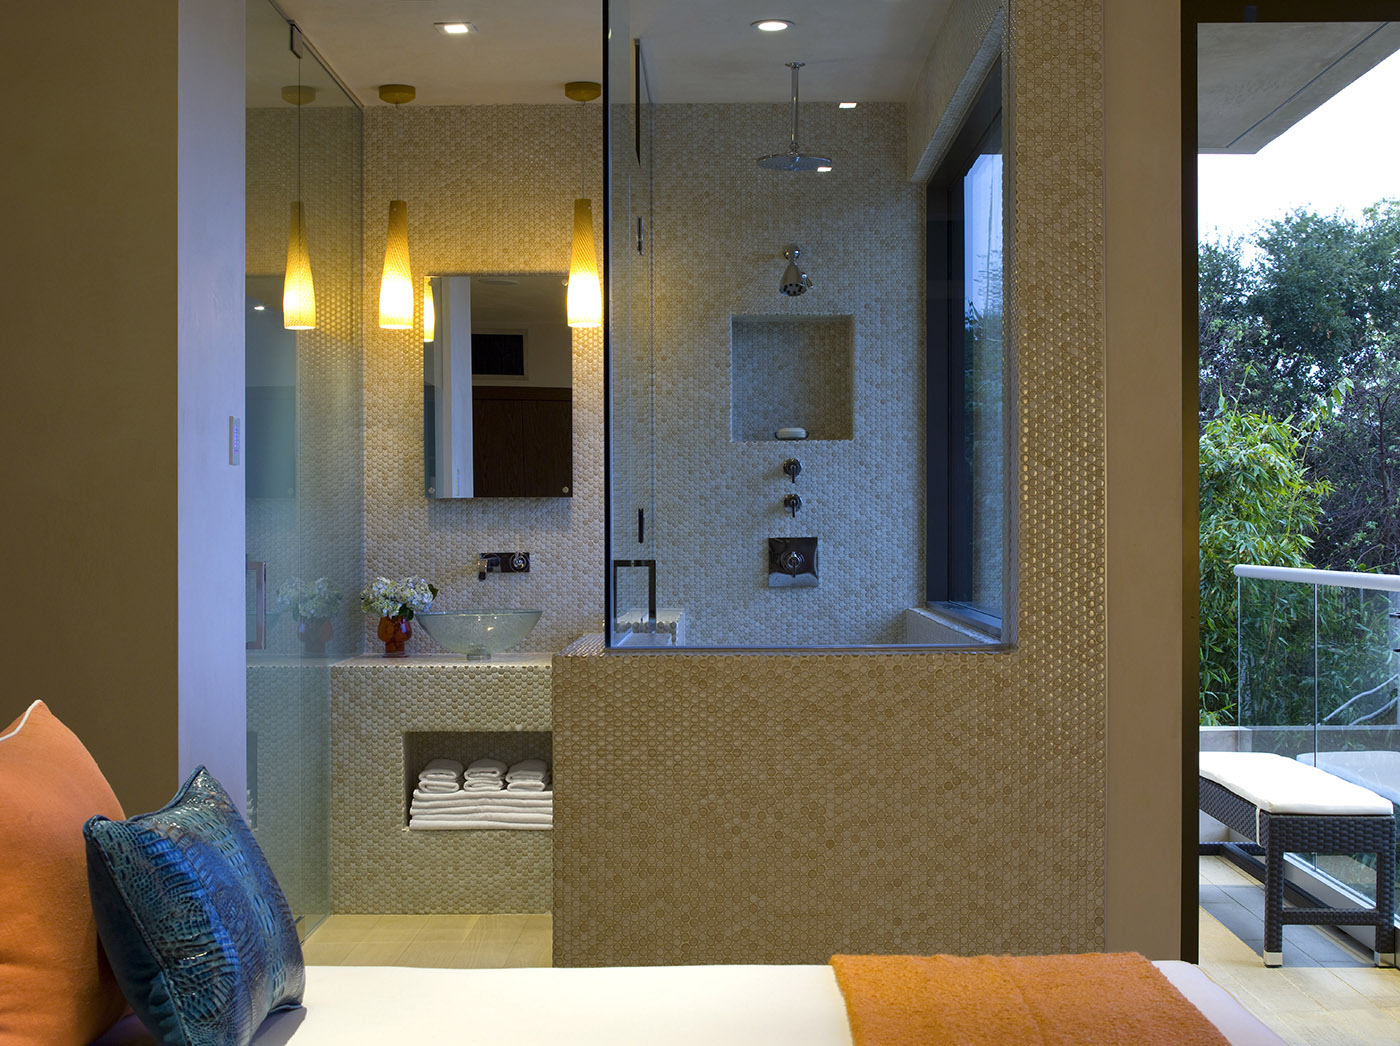 Hollywood hills master bathroom design project the design - Hollywood Hills Master Bathroom Design Project The Design 9